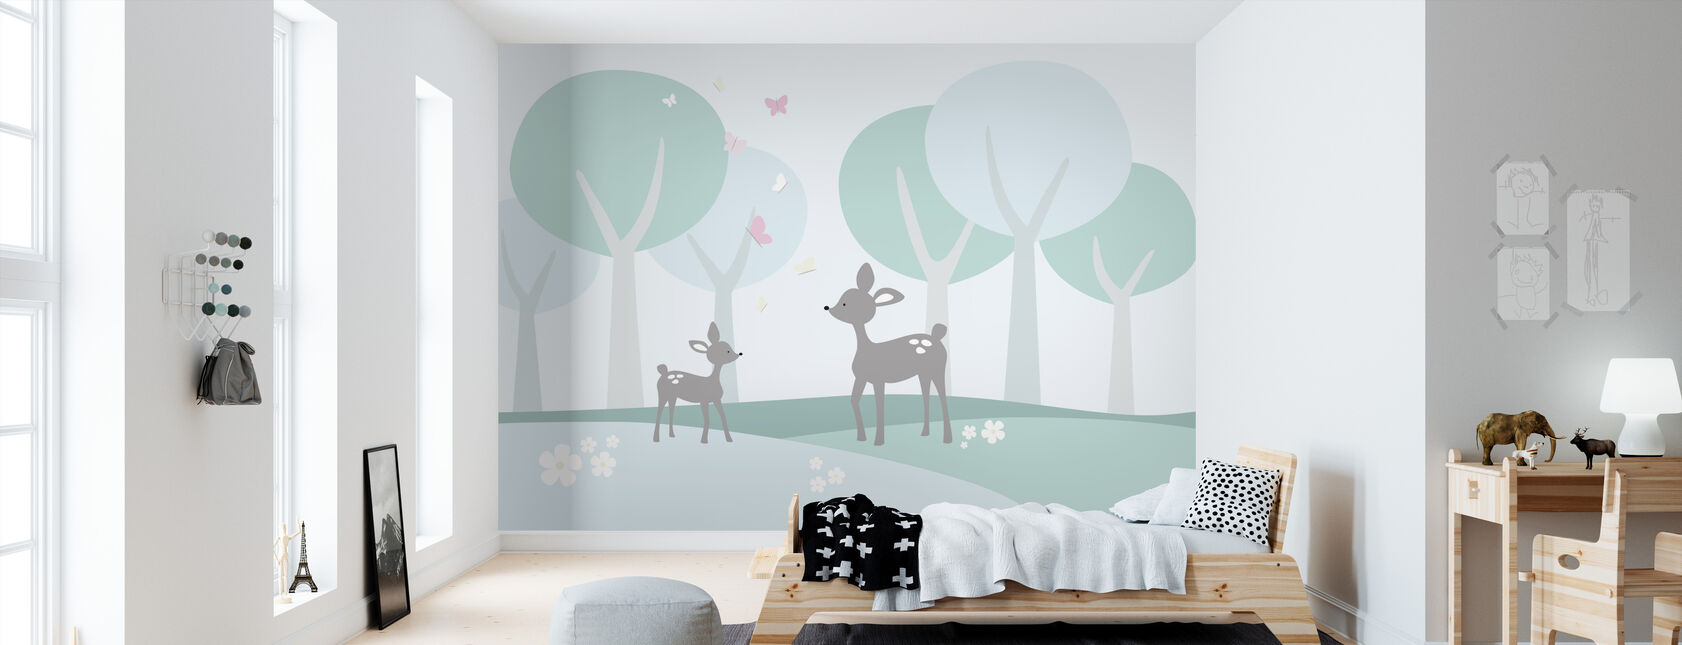 Deer in Woods - Wallpaper - Kids Room